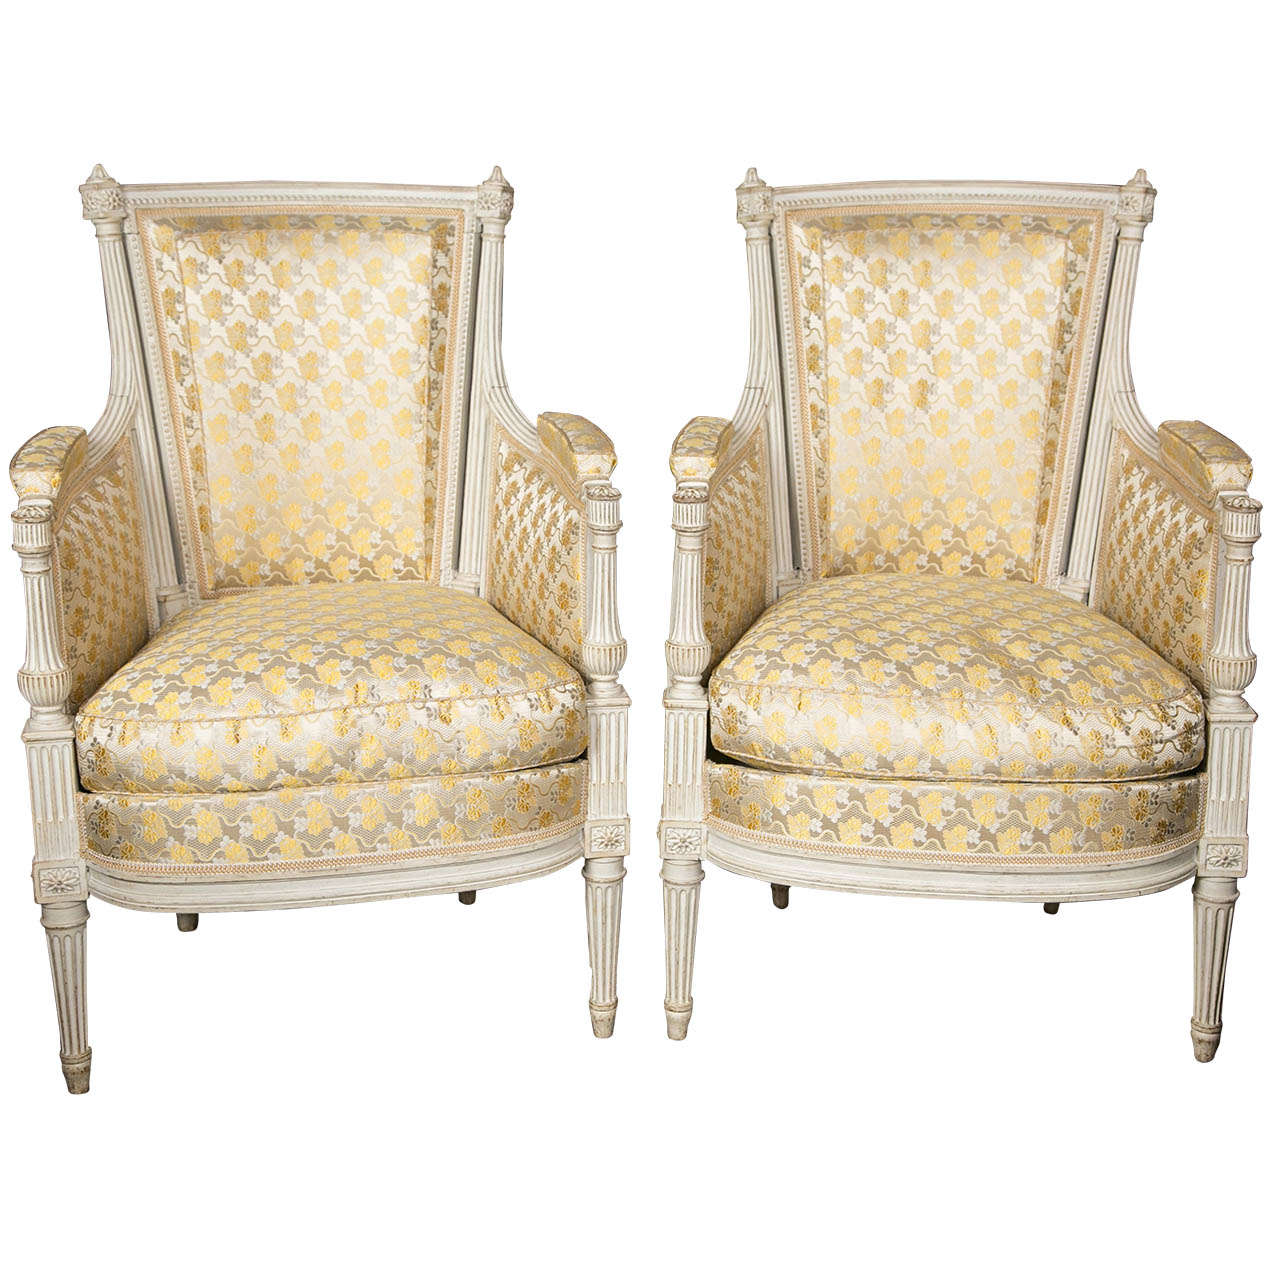 Decorative Arm Chairs ~ A fine pair of louis xvi style swedish decorative arm